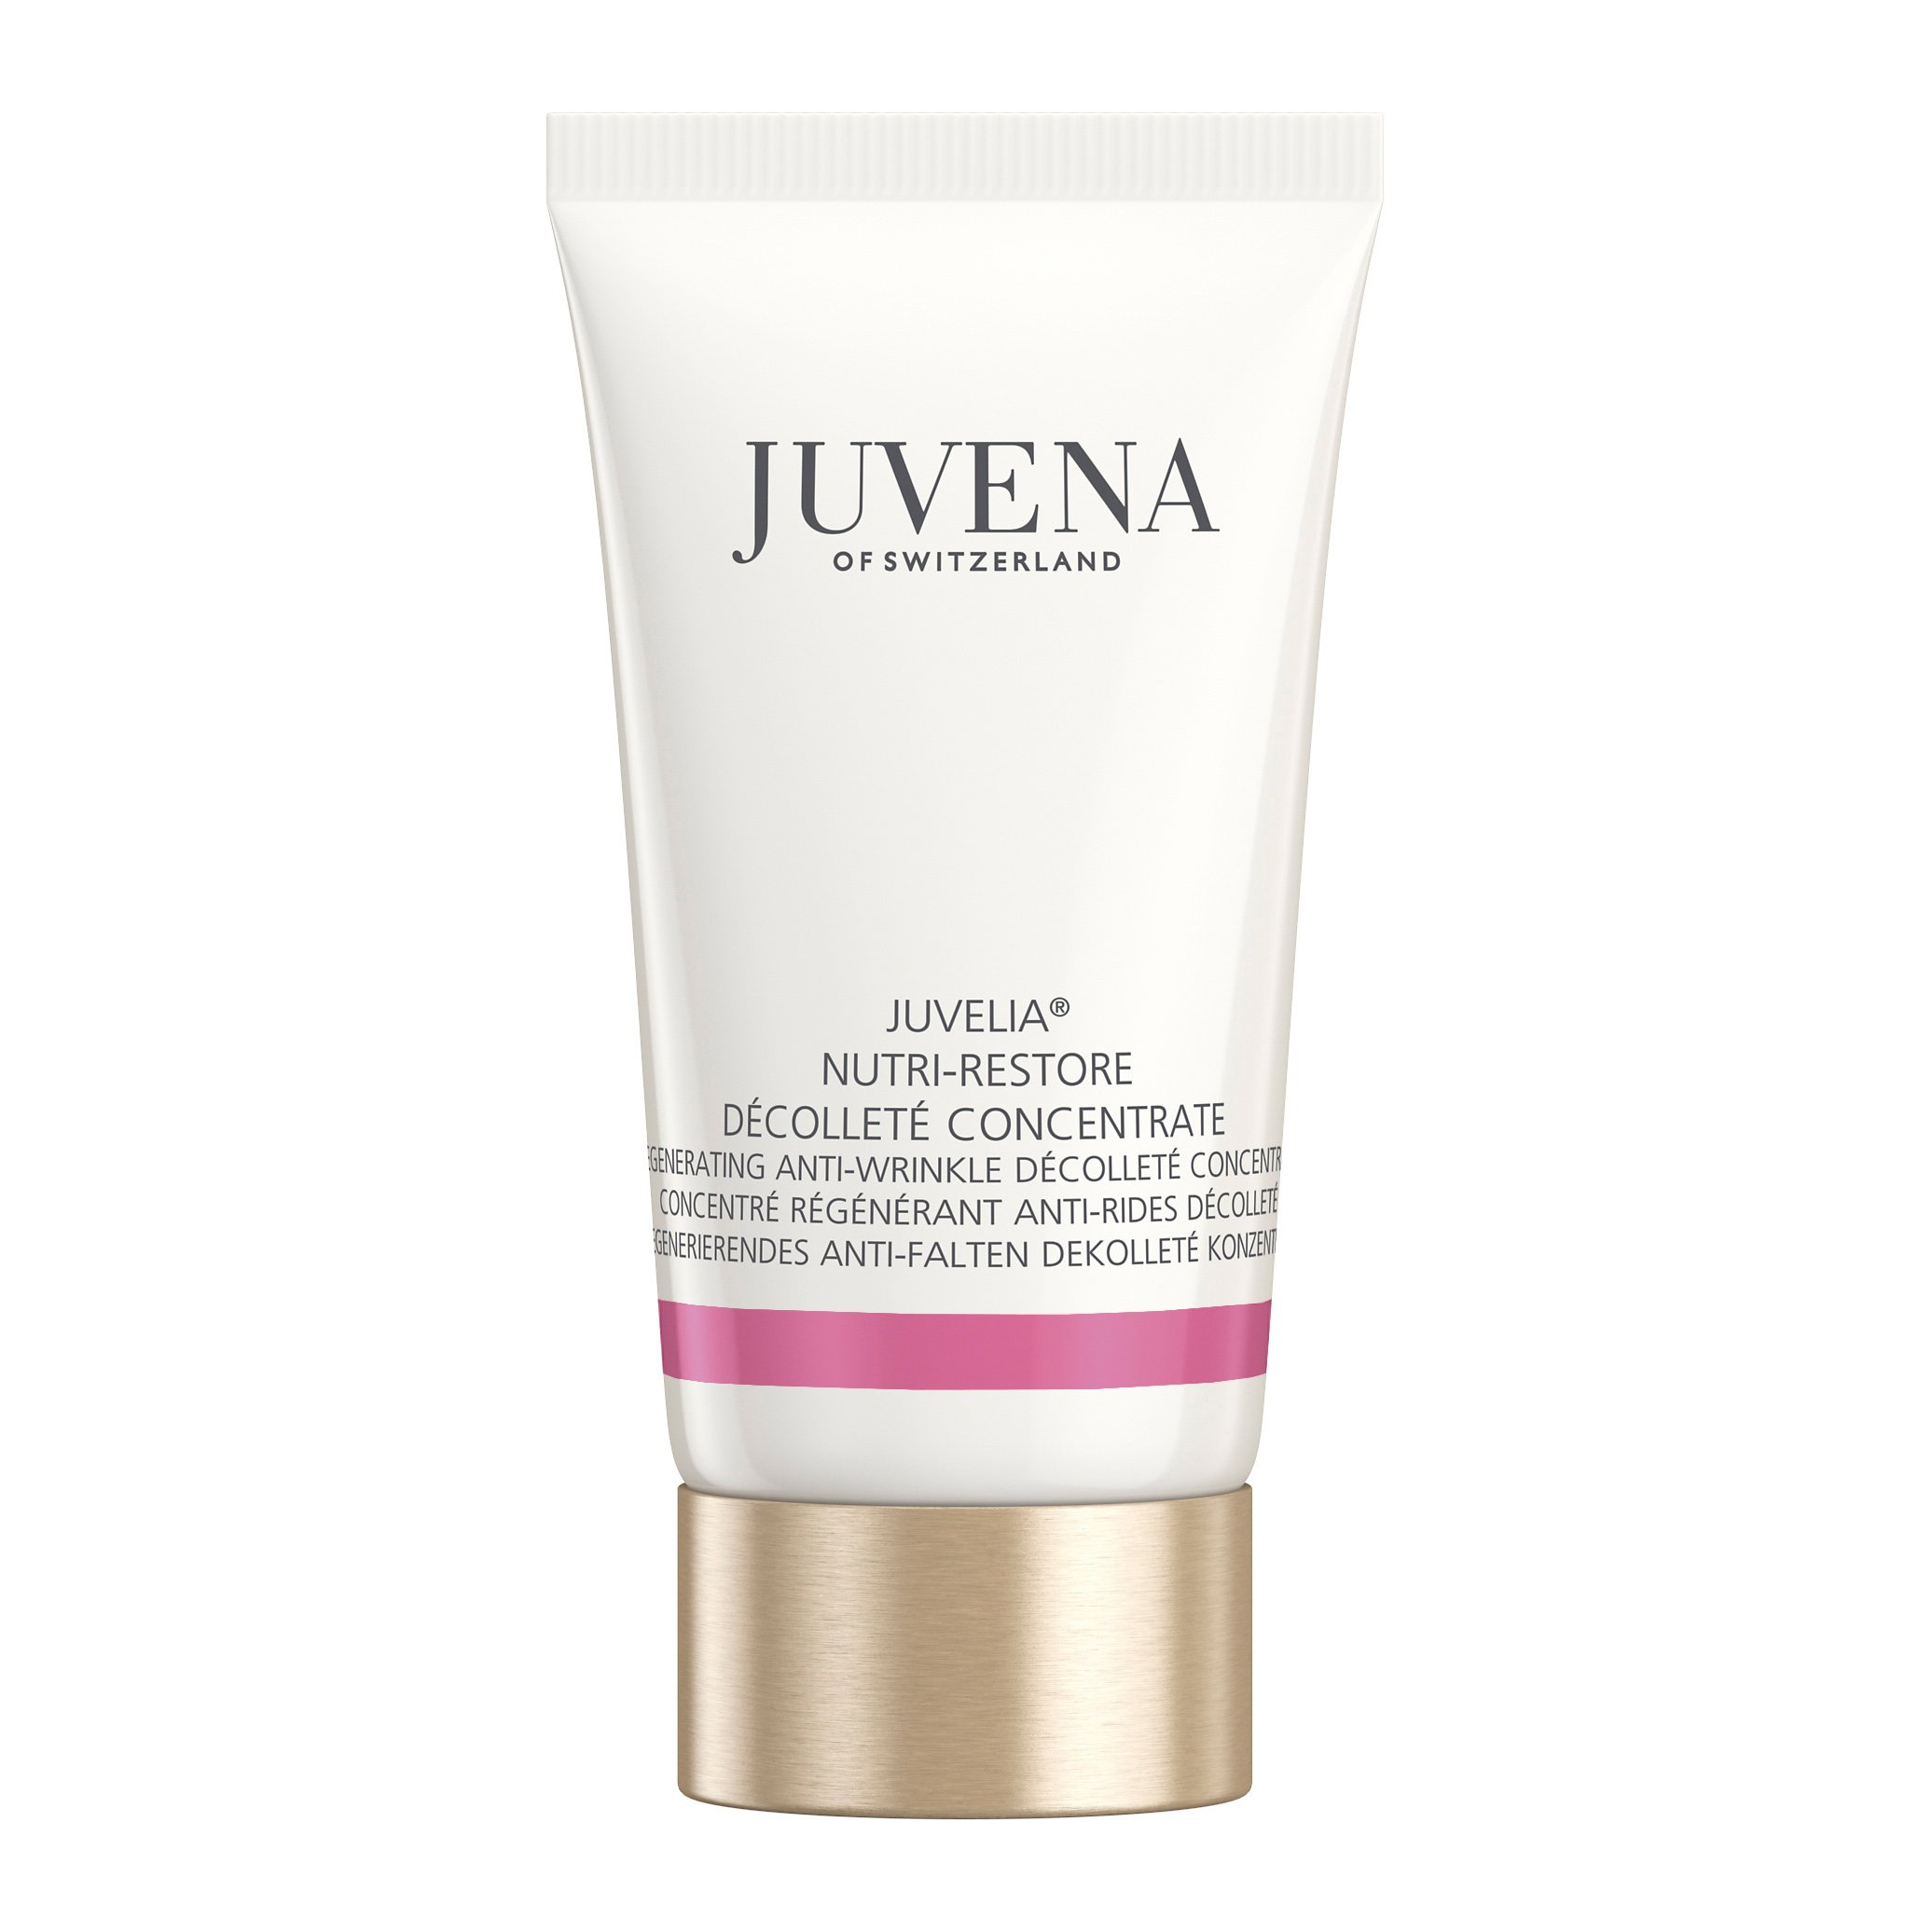 Juvena Juvelia Nutri-Restore Decollete Concentrate Αντιγηραντικός Ορός – Συμπύκνωμα Βαθιάς Αναγέννησης για Λαιμό & Ντεκολτέ 75ml